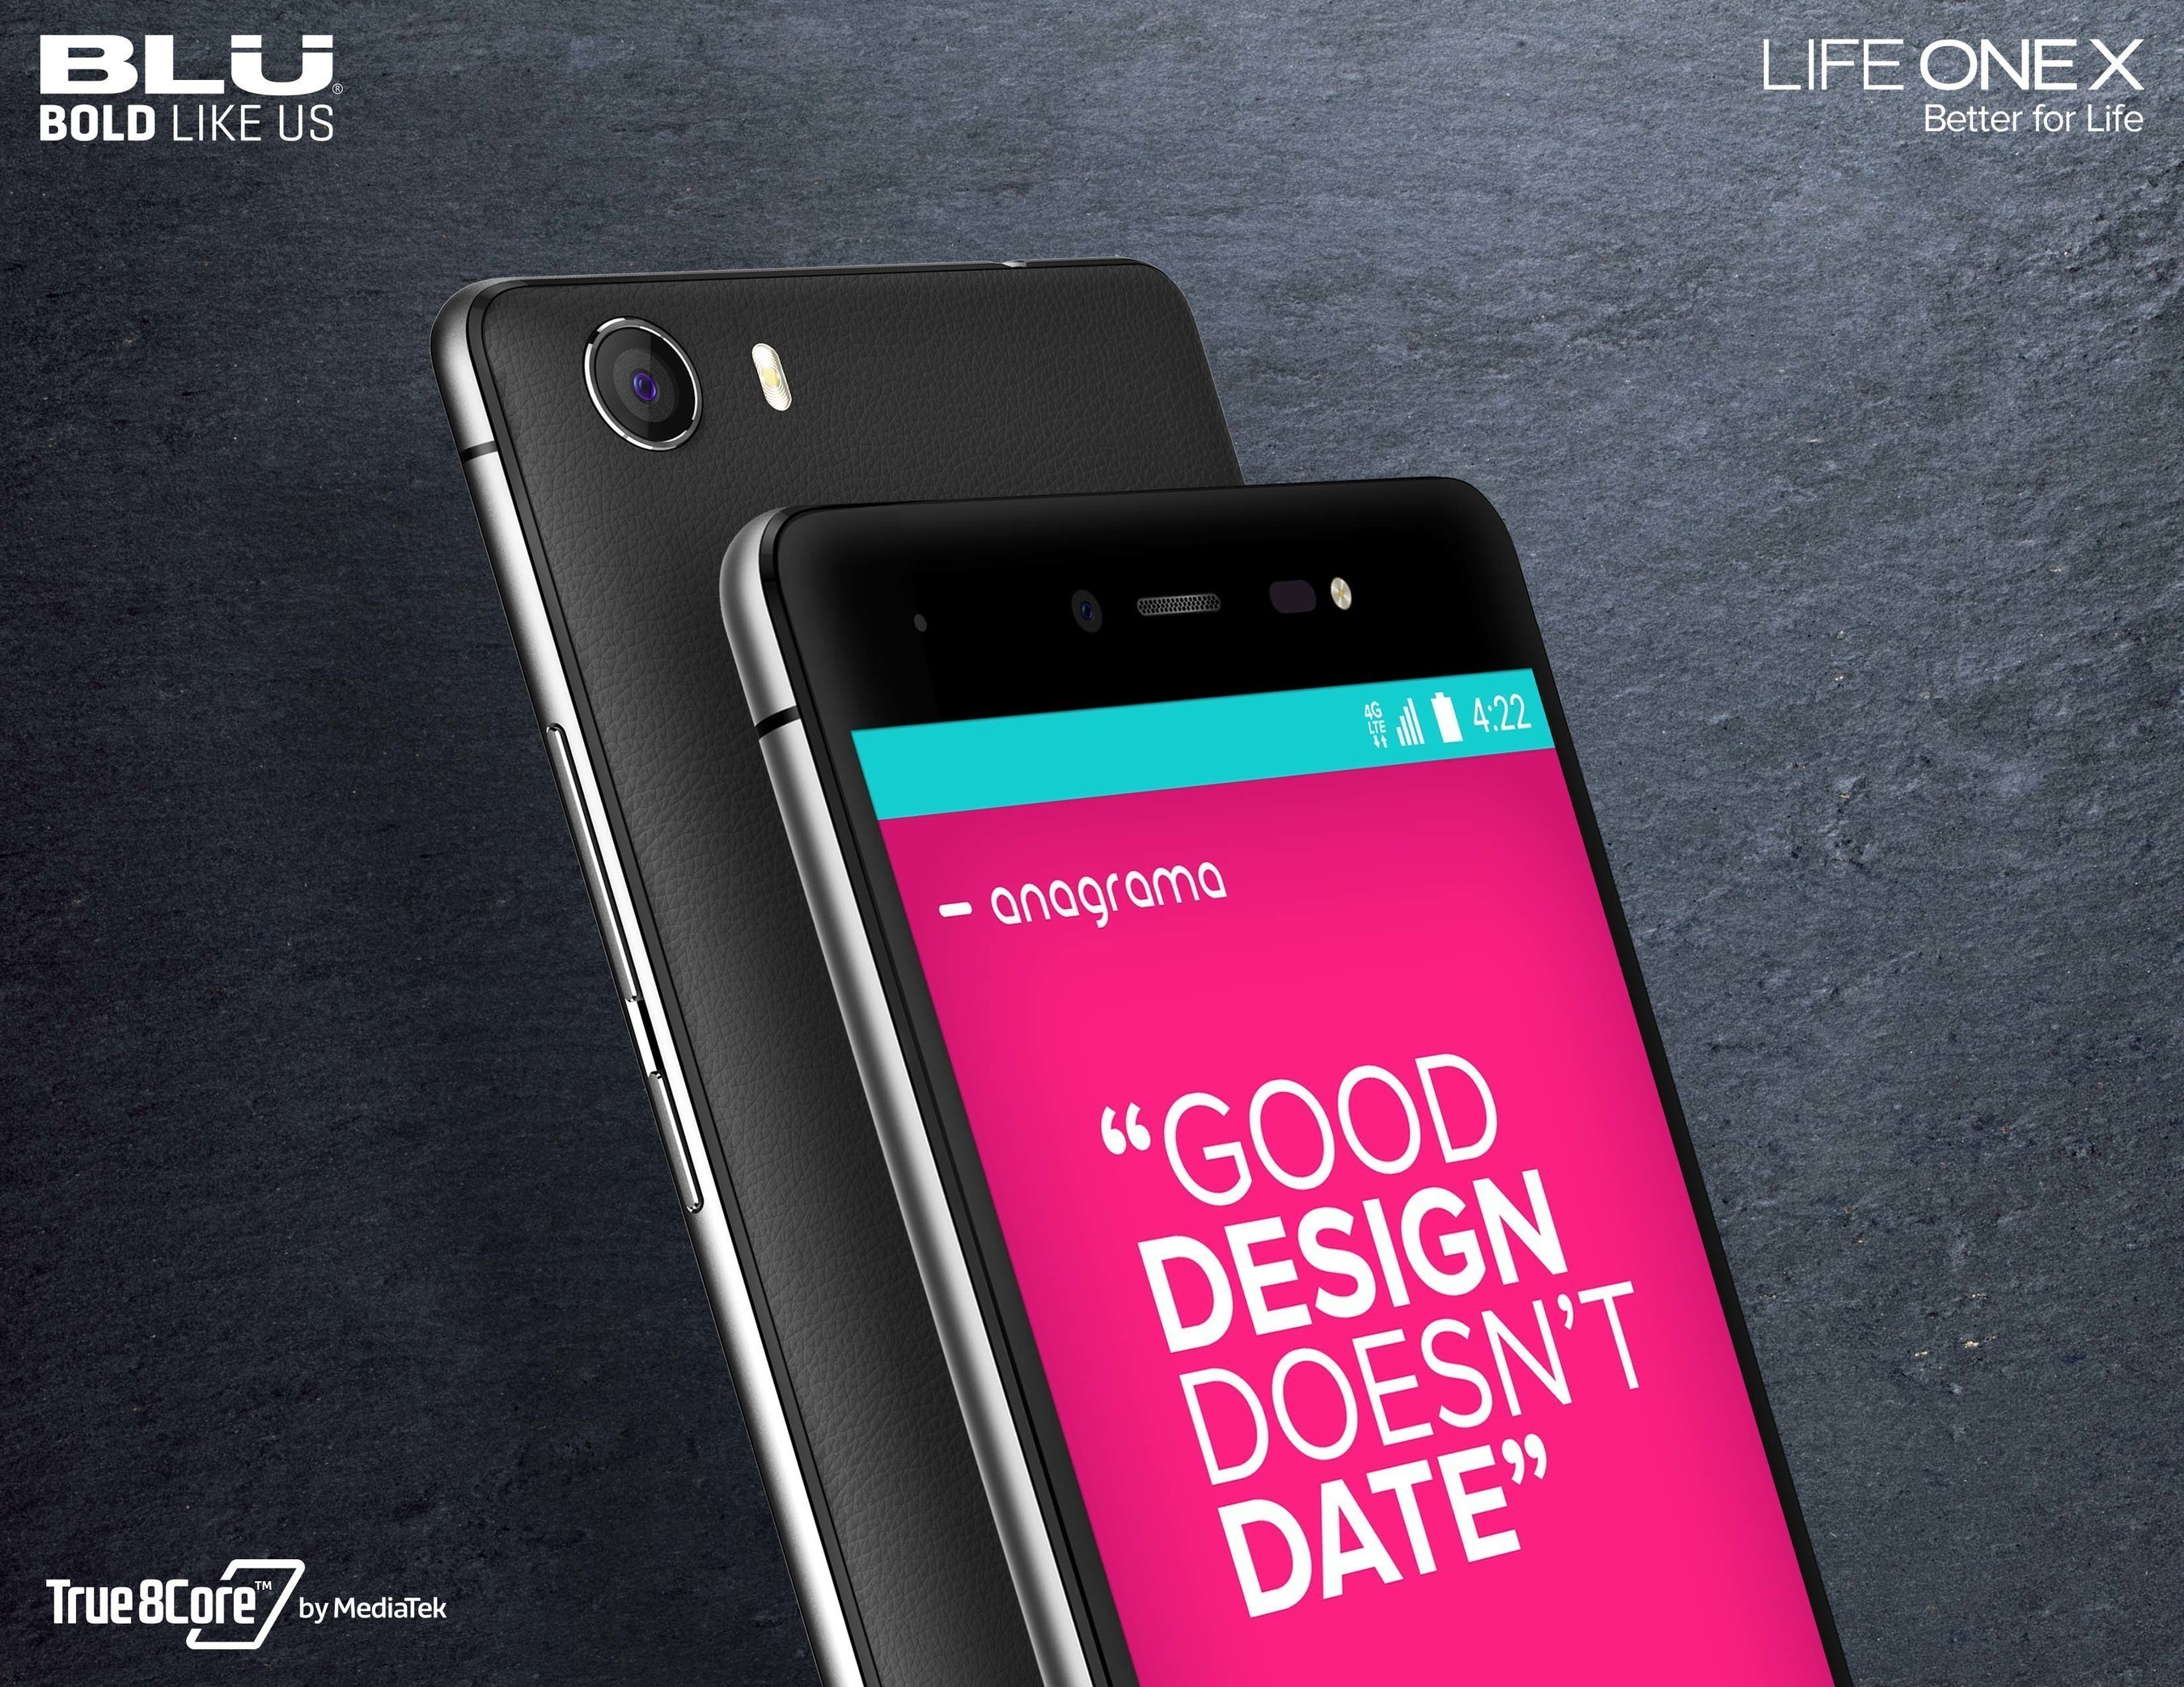 BLU Products Announces Life One X, Powered By Mediatek Octa-Core Chipset - The Best Affordable